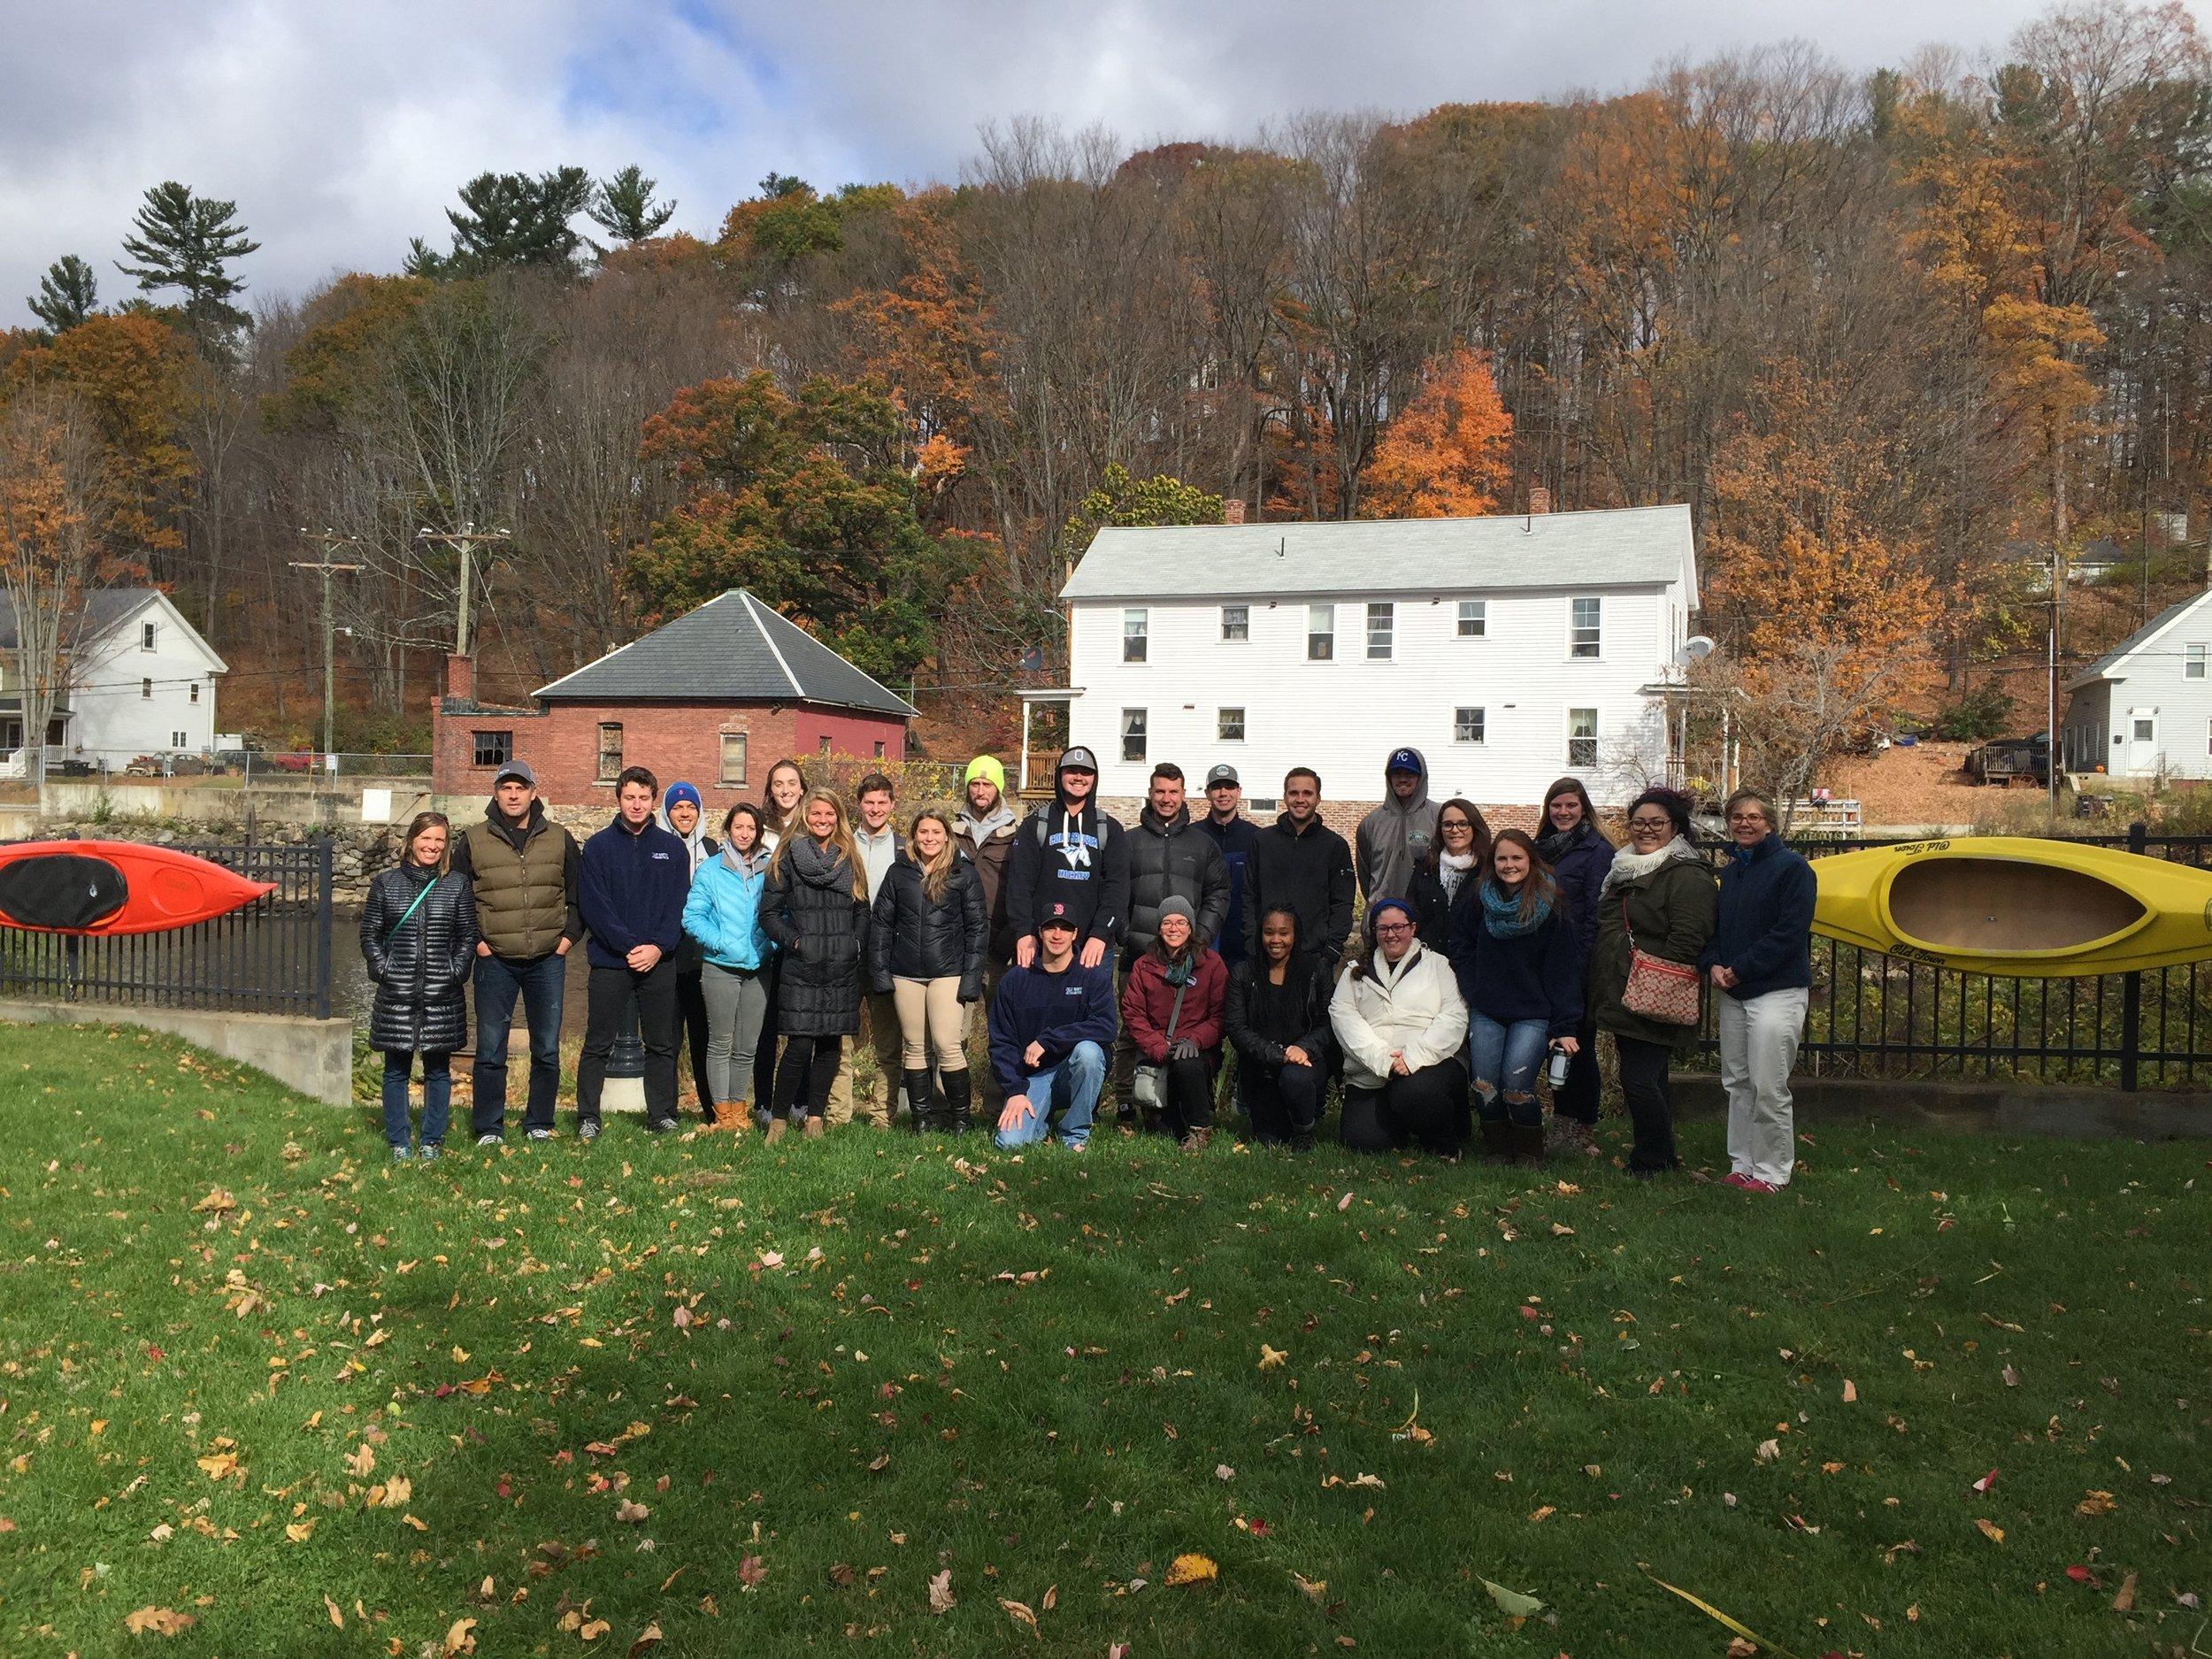 Students from a sport management class collaborated with students from a graphic design class to develop a marketing plan and identity system for the proposed Franklin Falls Whitewater and Mountain Bike Parks, working closely with Marty Parichand of Outdoor New England (ONE).